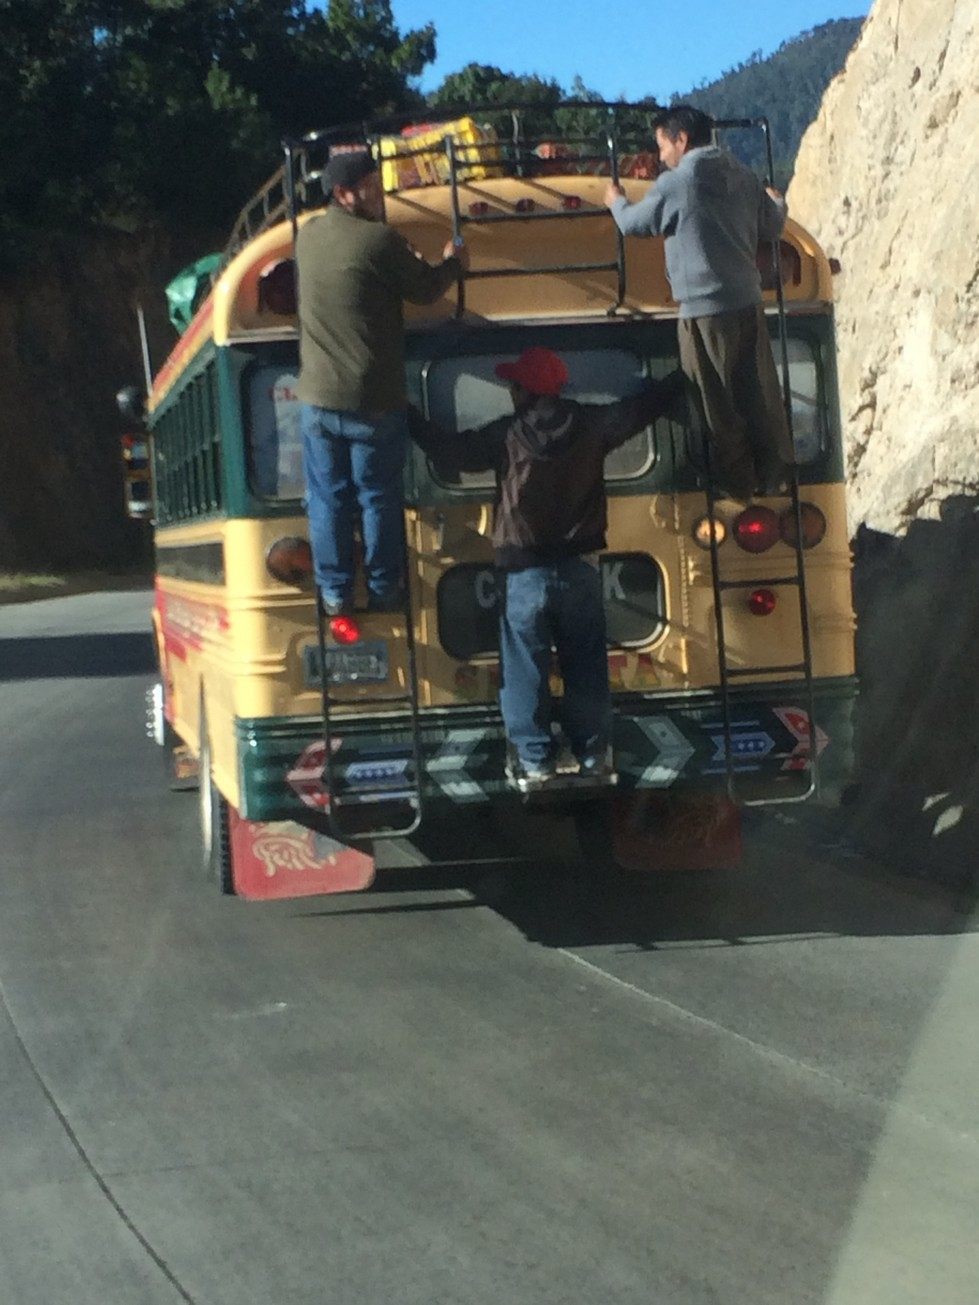 There's no more room on the bus...duh, that's what the ladders and bumper are for.